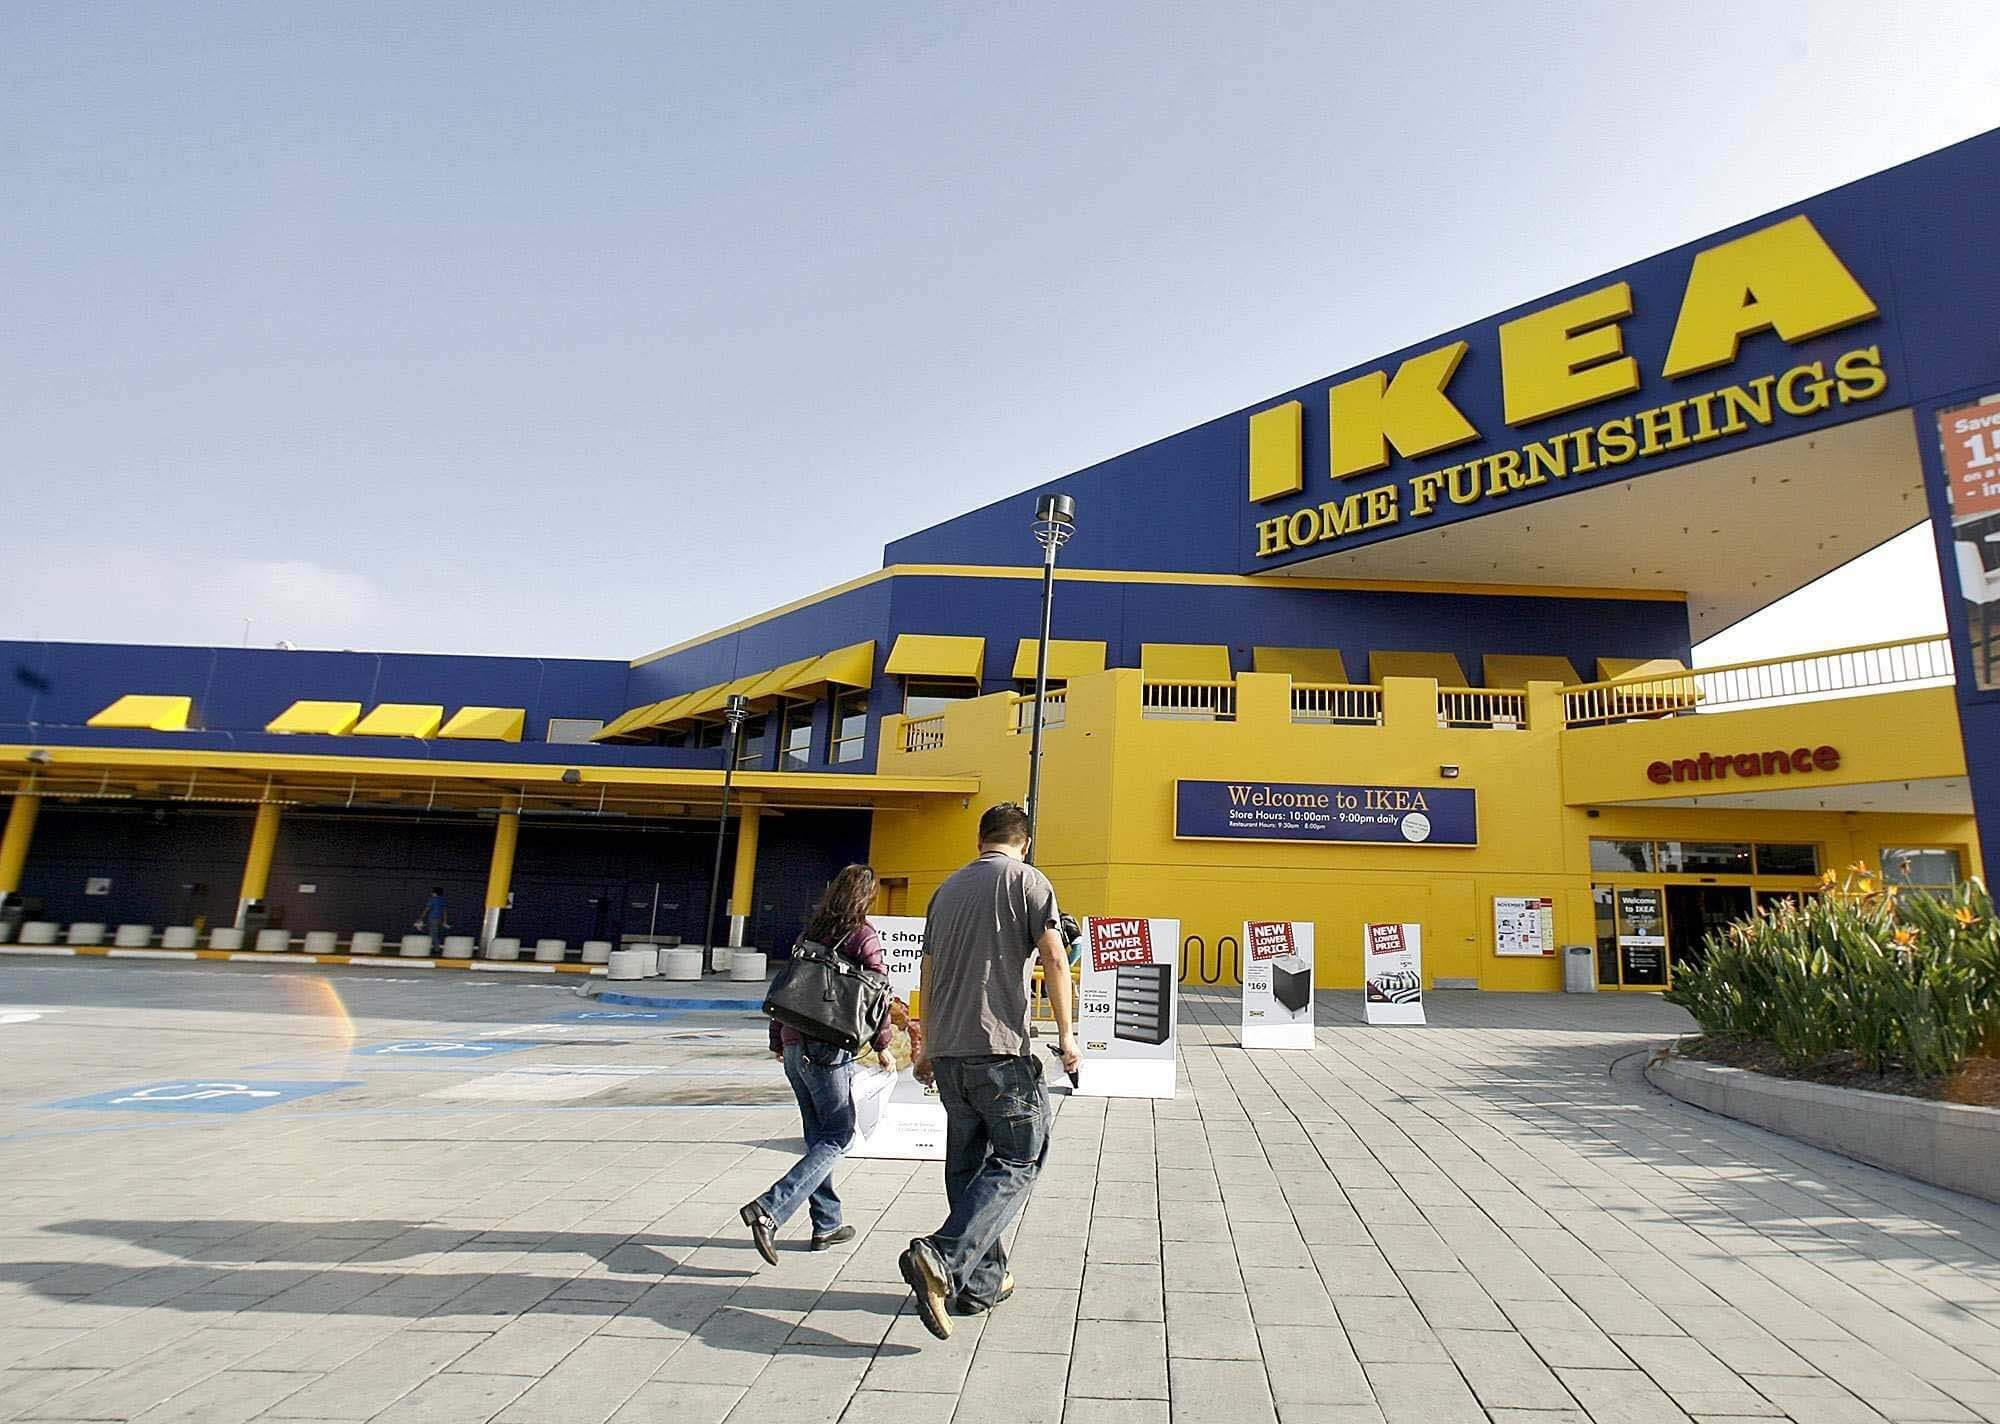 IKEA Buying Illinois Wind Farm, Its First U.S. Investment In Wind Energy Project